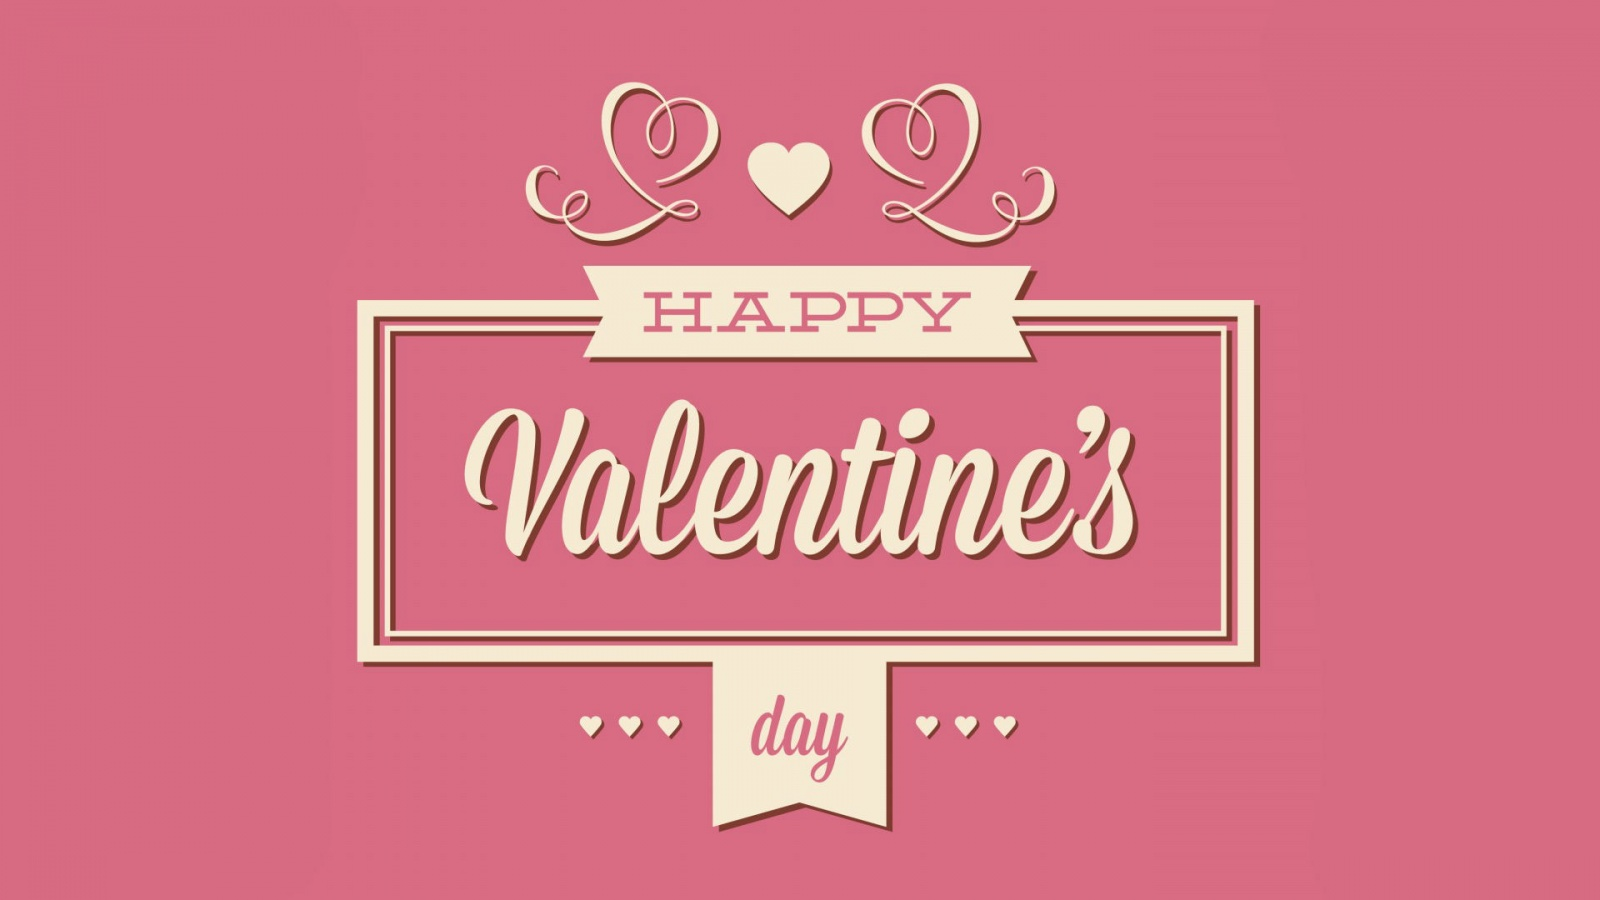 Happy Valentines Day Greeting Wallpapers - 1600x900